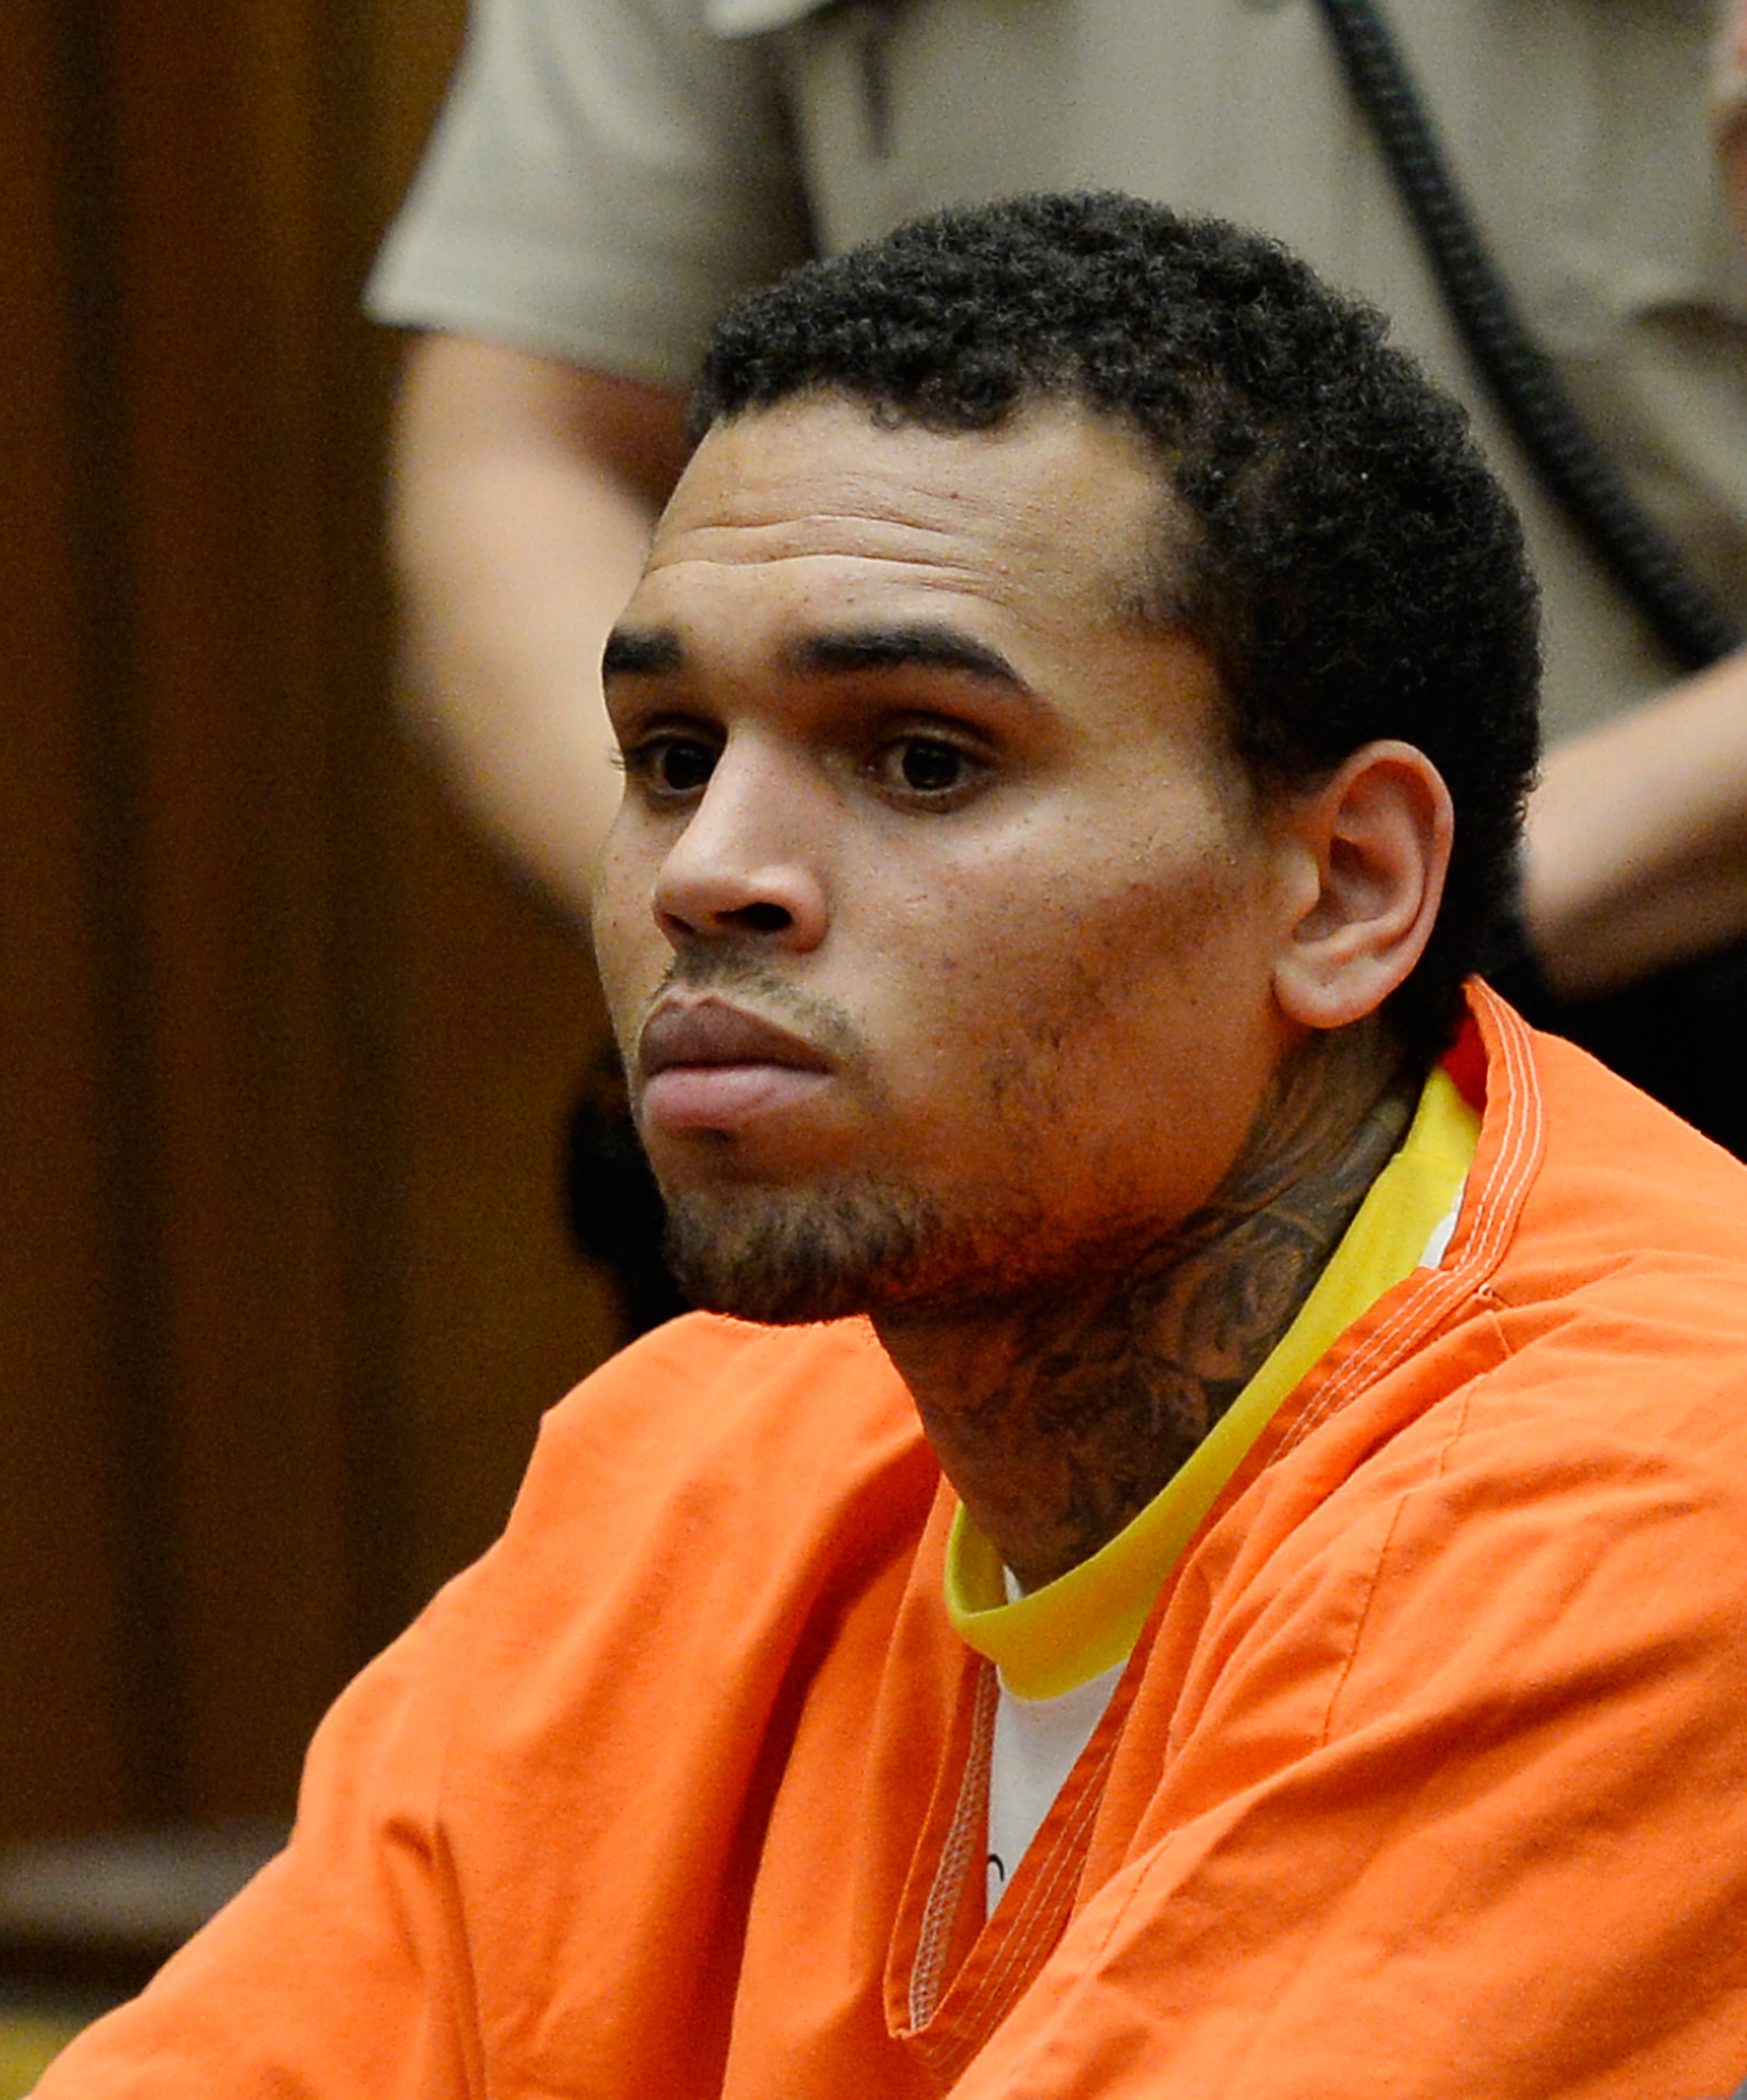 Chris Brown to Spend 131 More Days in Jail